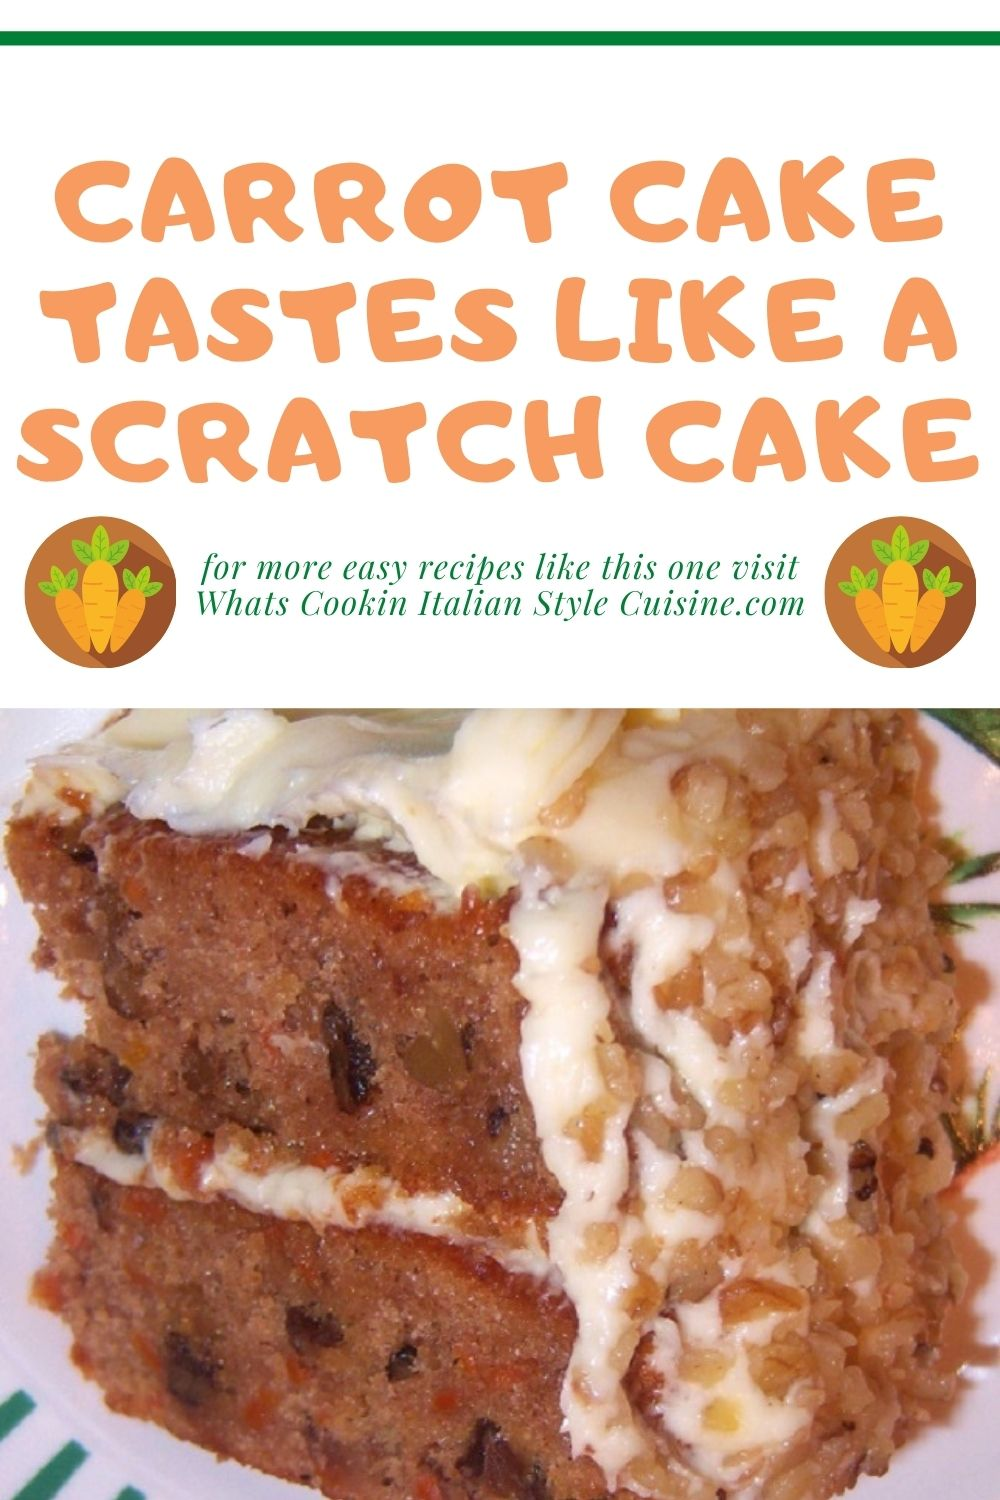 this is carrot cake for easter